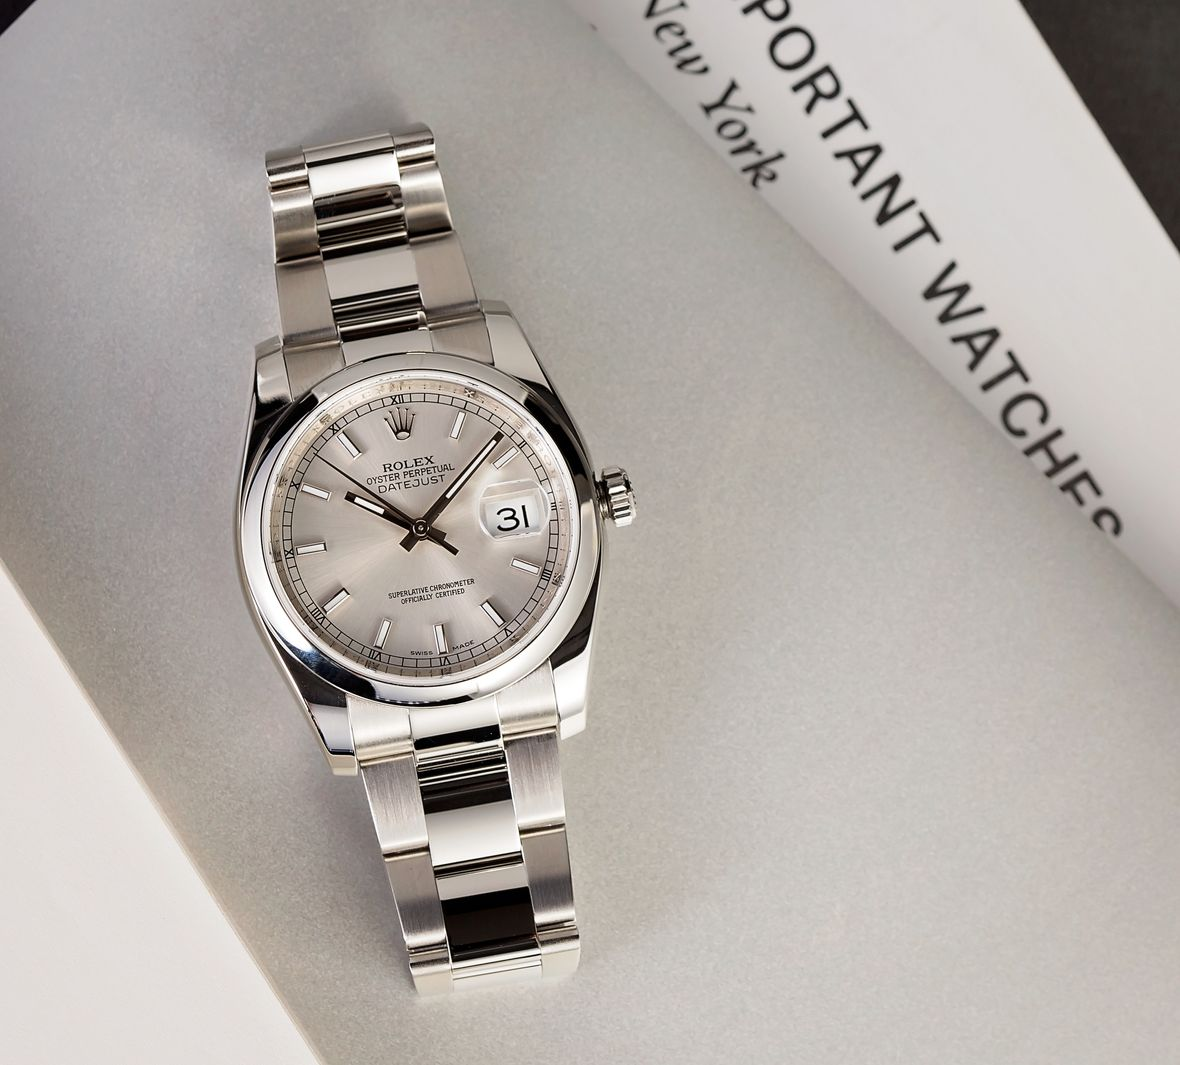 Rolex 116200 Datejust 36 Silver Dial Oyster Bracelet